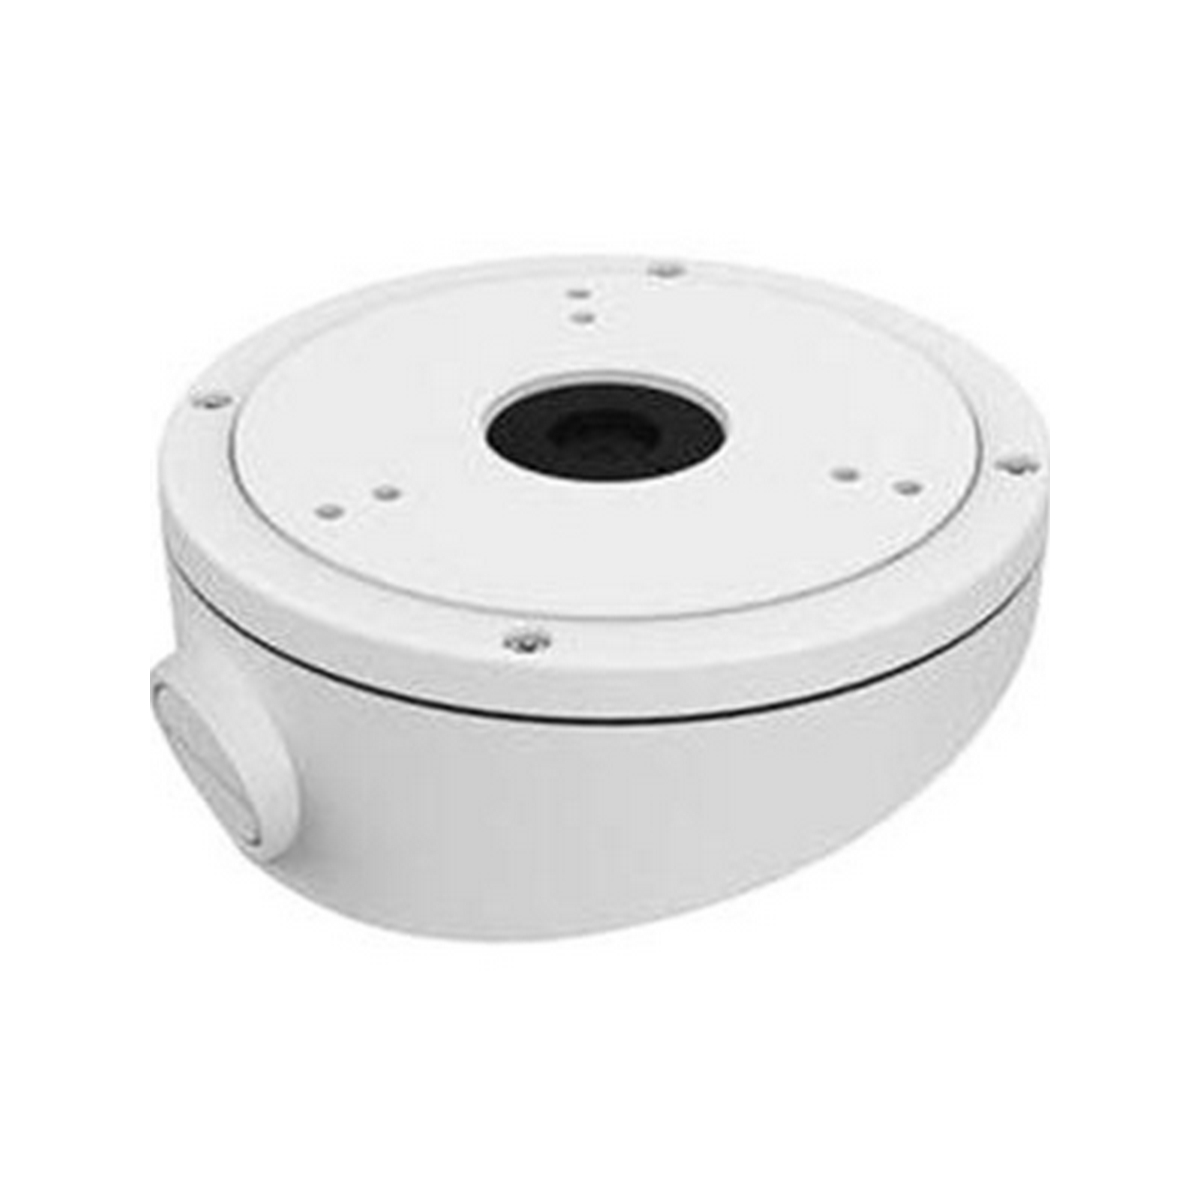 Hikvision Angled Ceiling Mount Bracket for DS-2CD23xx series cameras